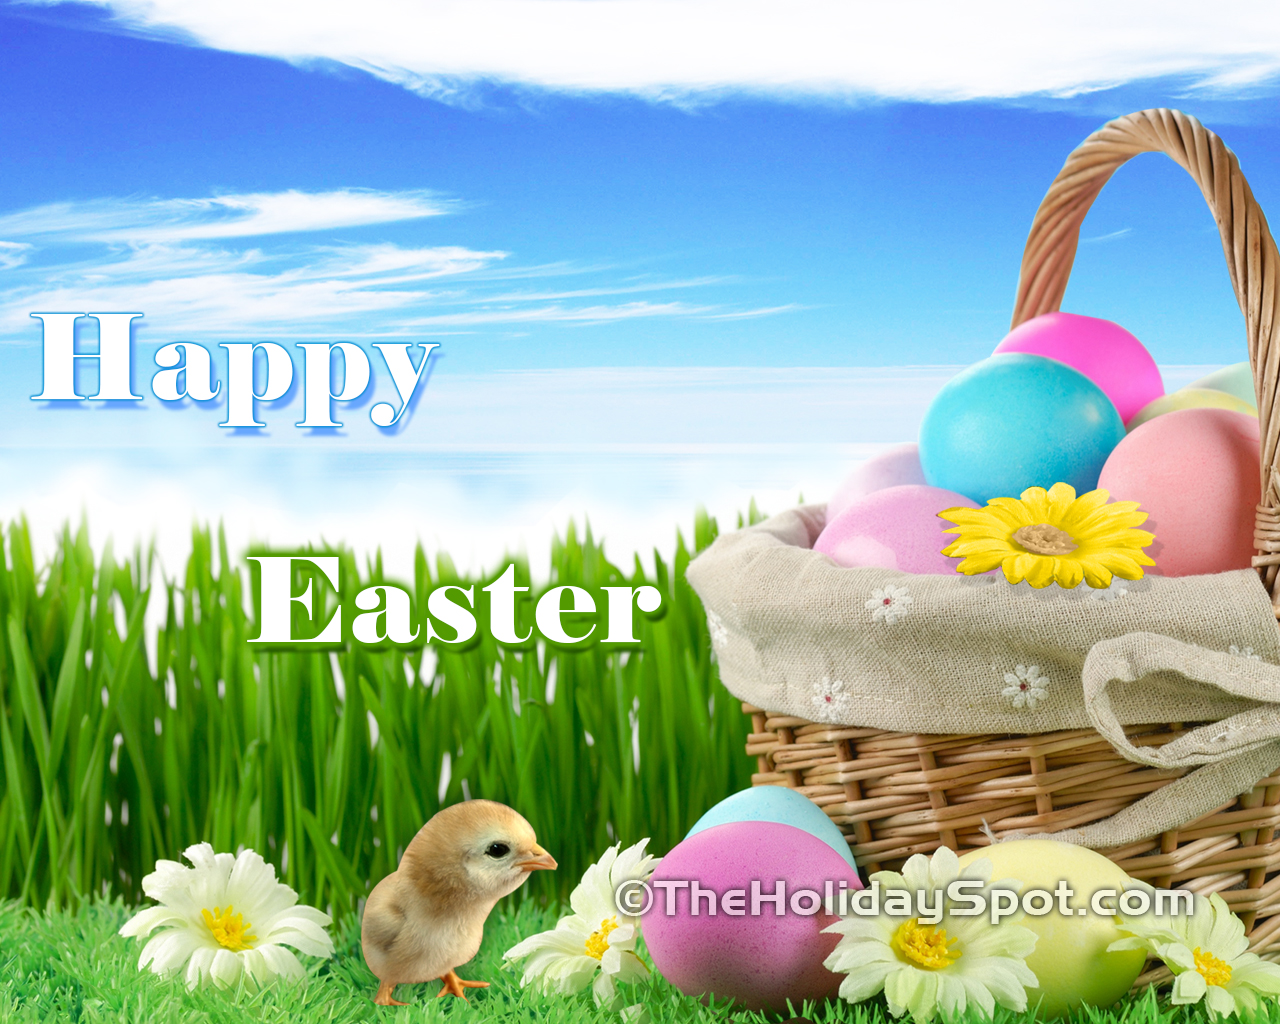 Chicks and Easter baskets with easter eggs 1280x1024